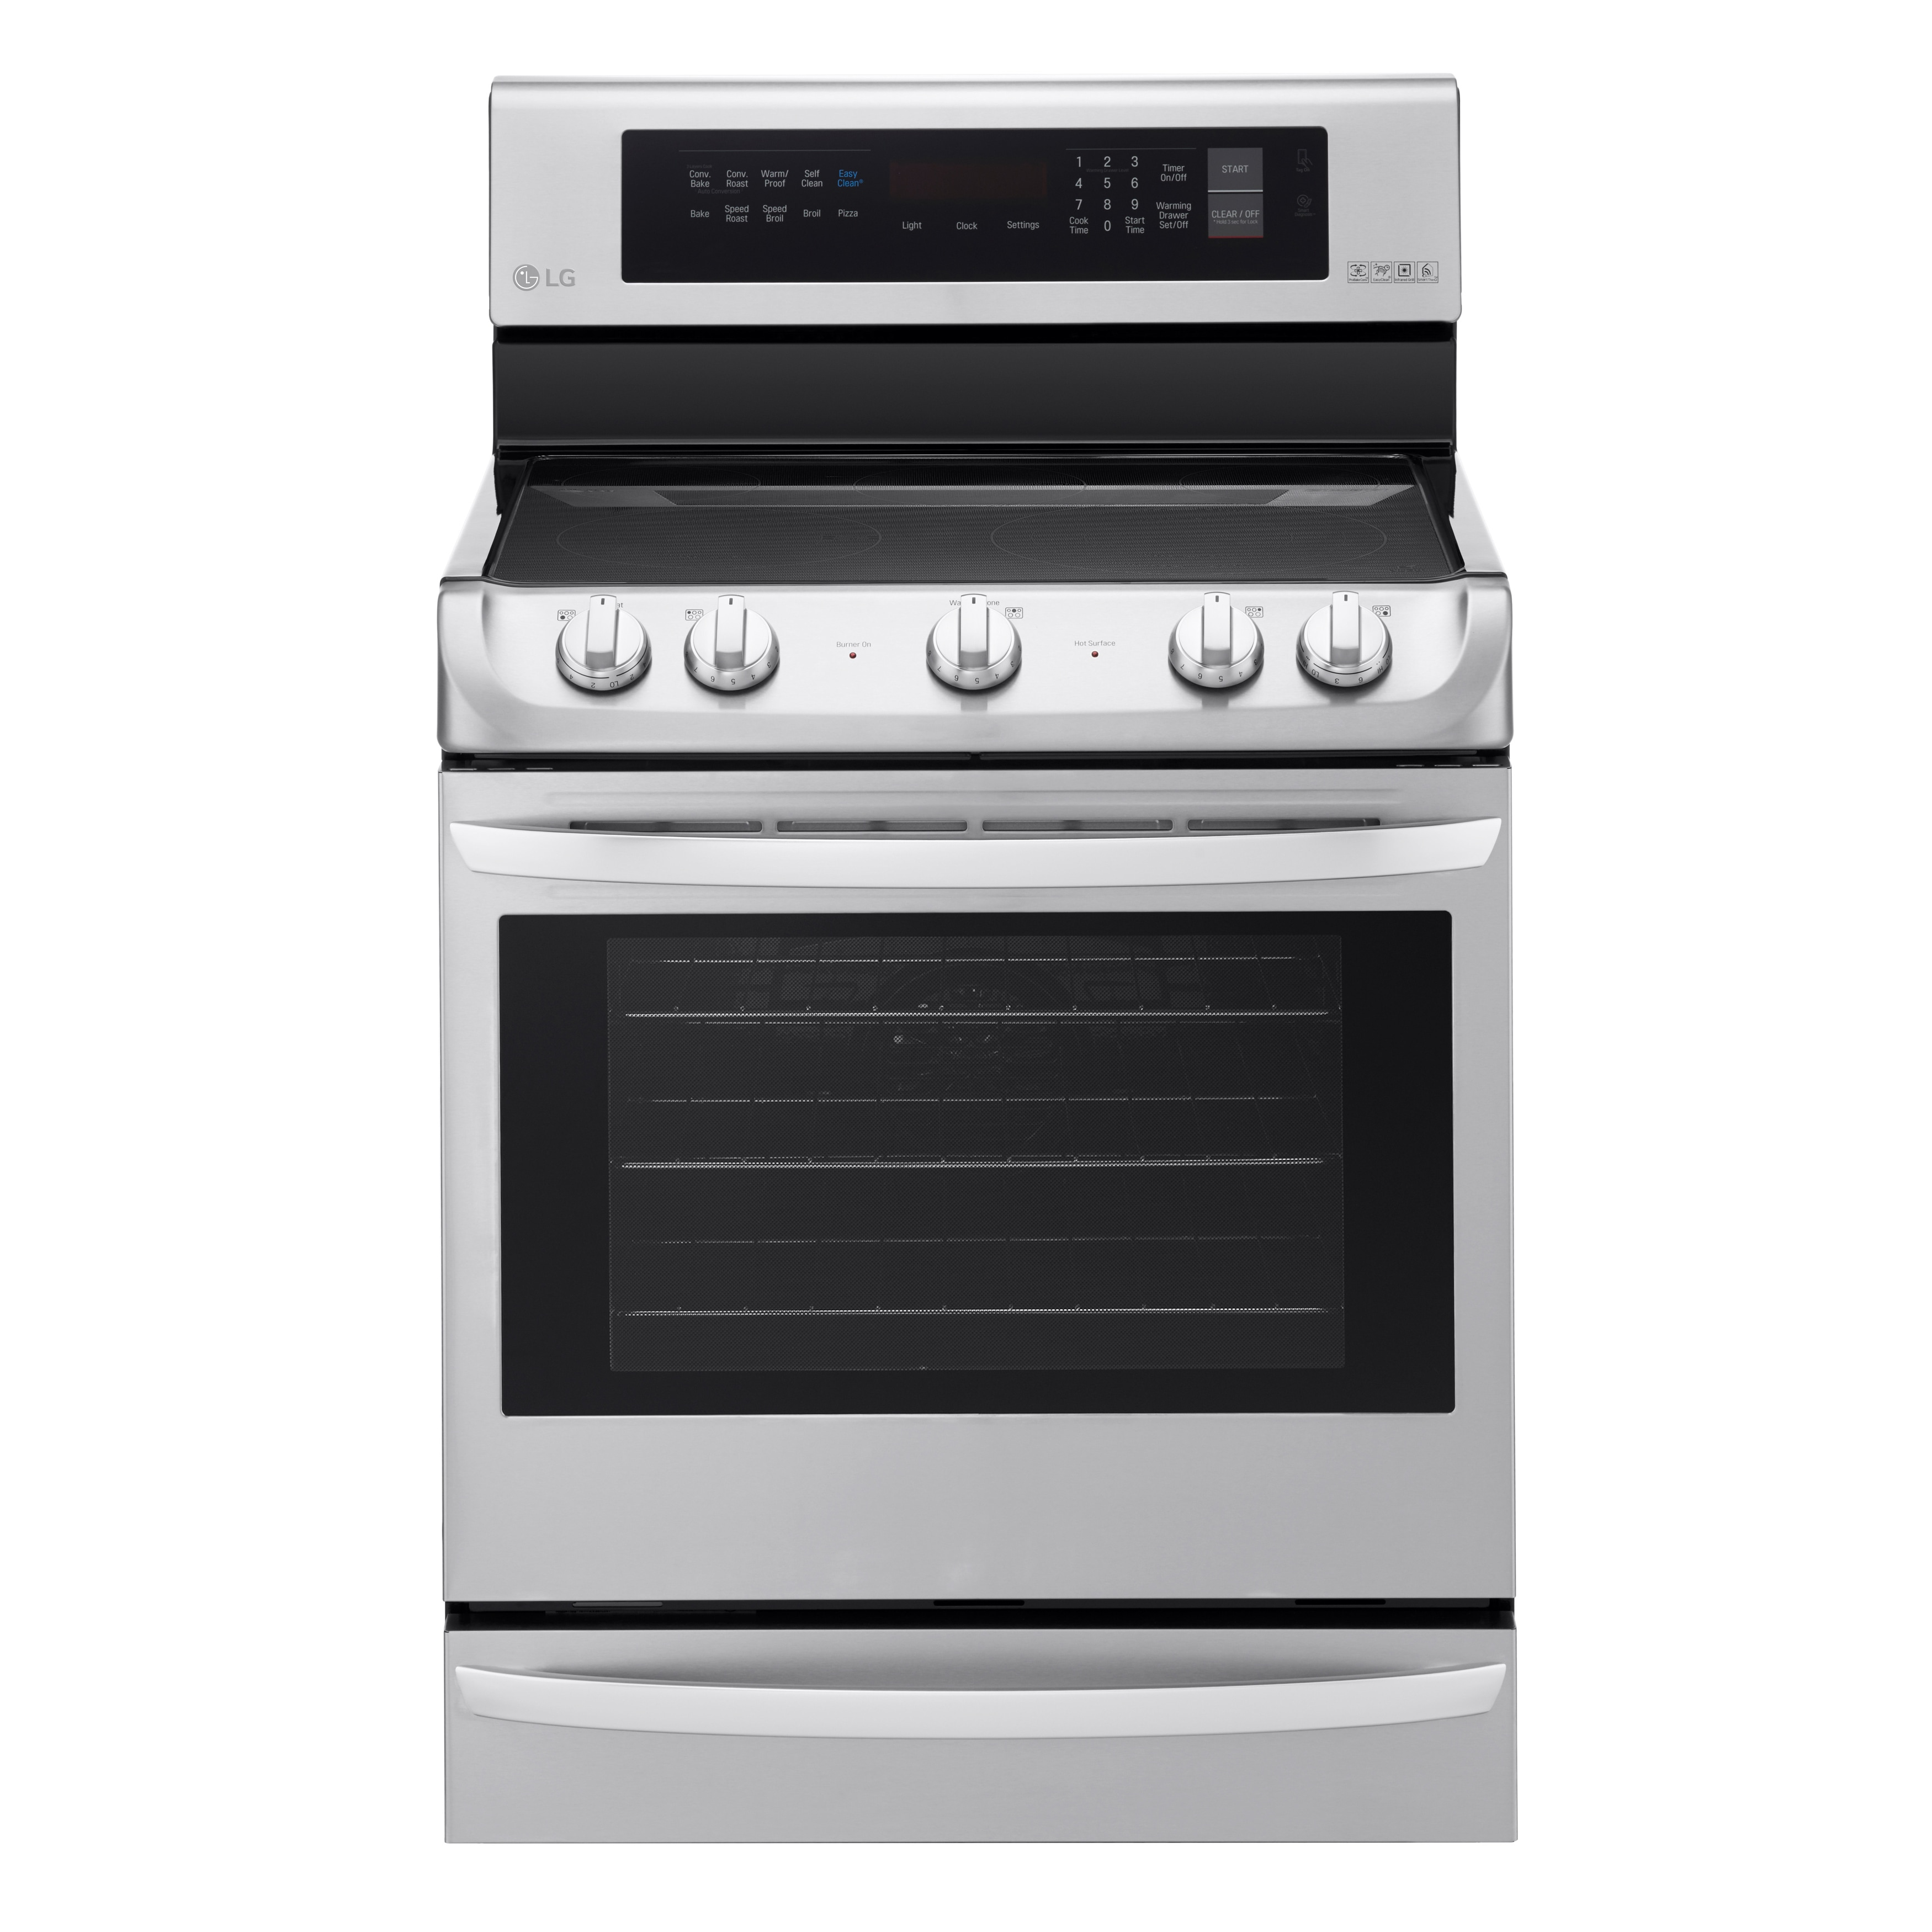 LG LRE4215ST 6.3 cu. ft Electric Single Oven Range with P...